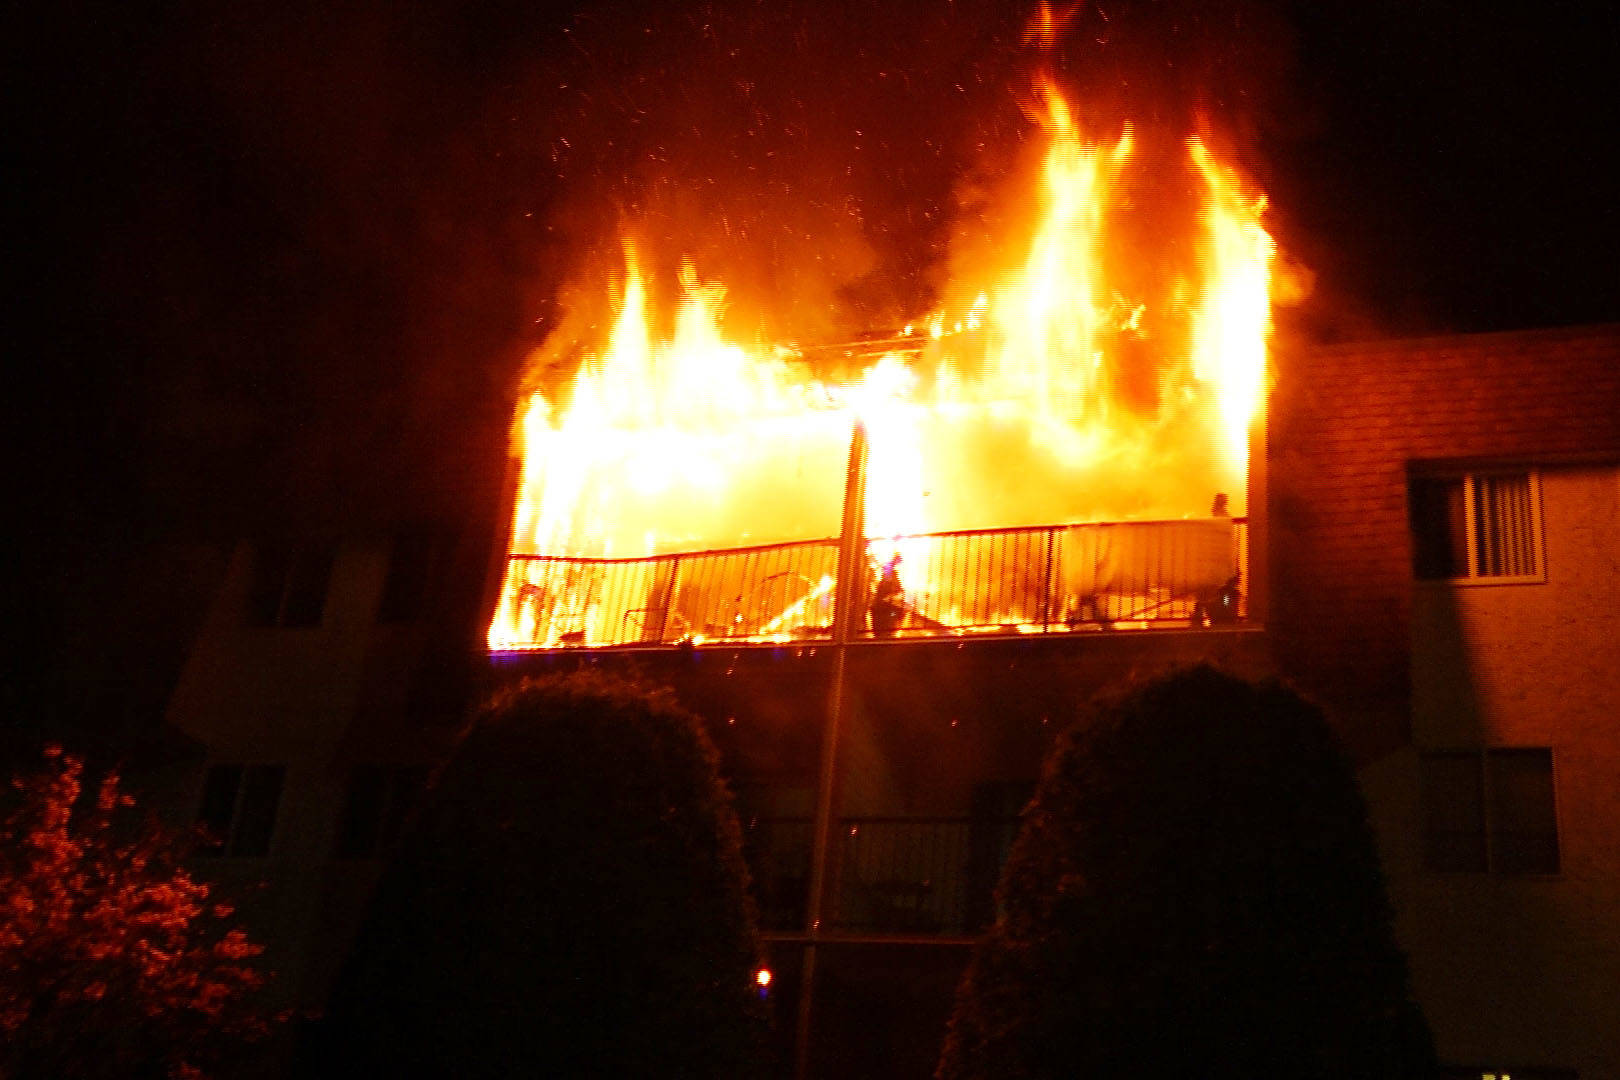 Four units damaged in Abbotsford apartment fire